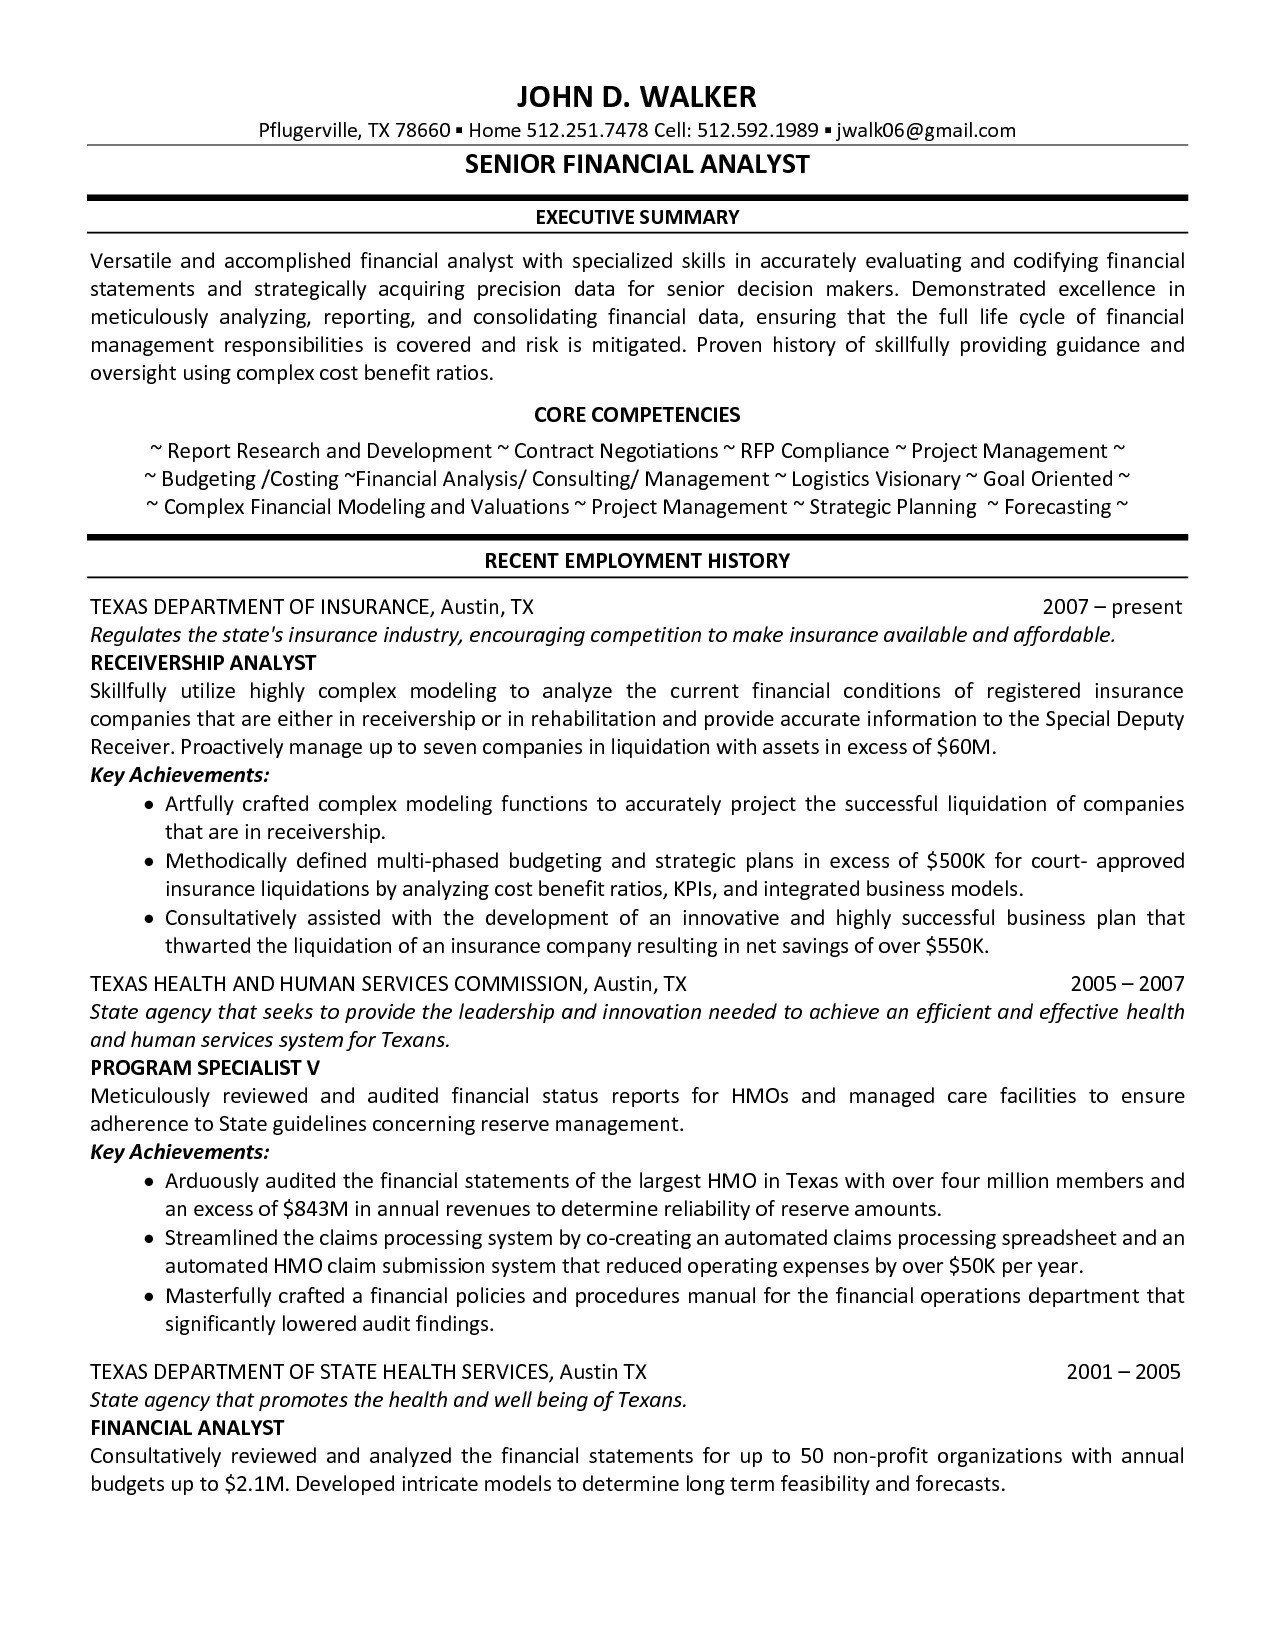 Financial Analyst Resume Sample Elegant 67 Beautiful Graphy Resume Examples For Jobs In Business Analyst Resume Resume Summary Examples Business Analyst